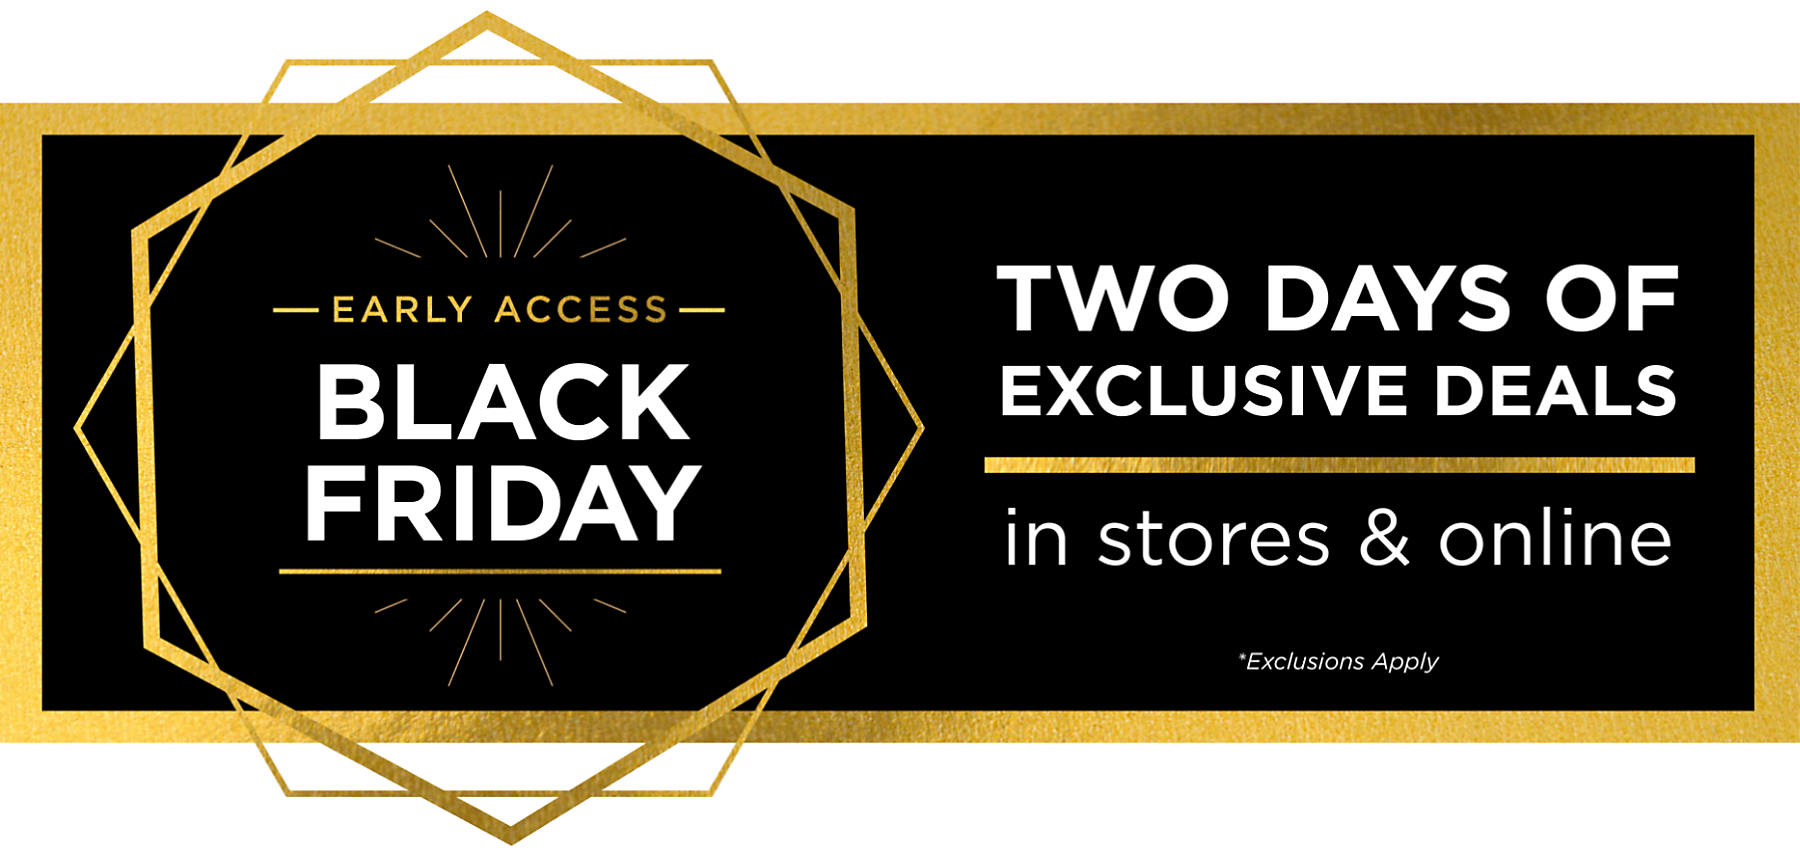 Early Access Black Friday Two Days of Exclusive Deals In Store and Online Exclusions Apply